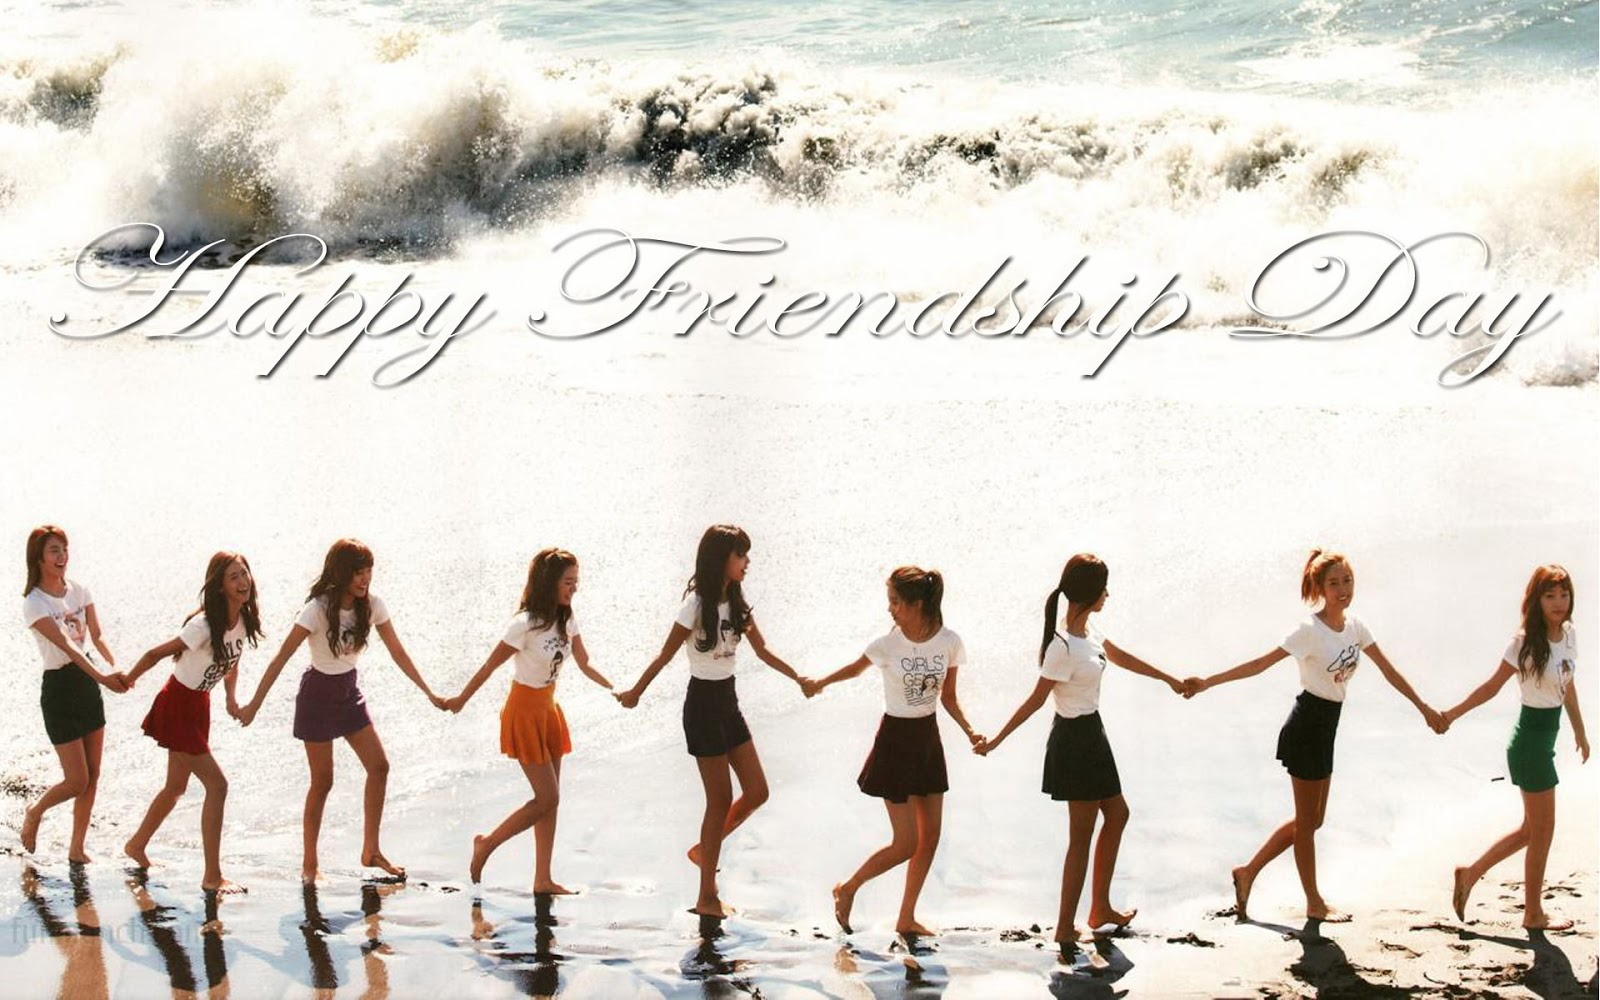 happy-friendship-day-images-download